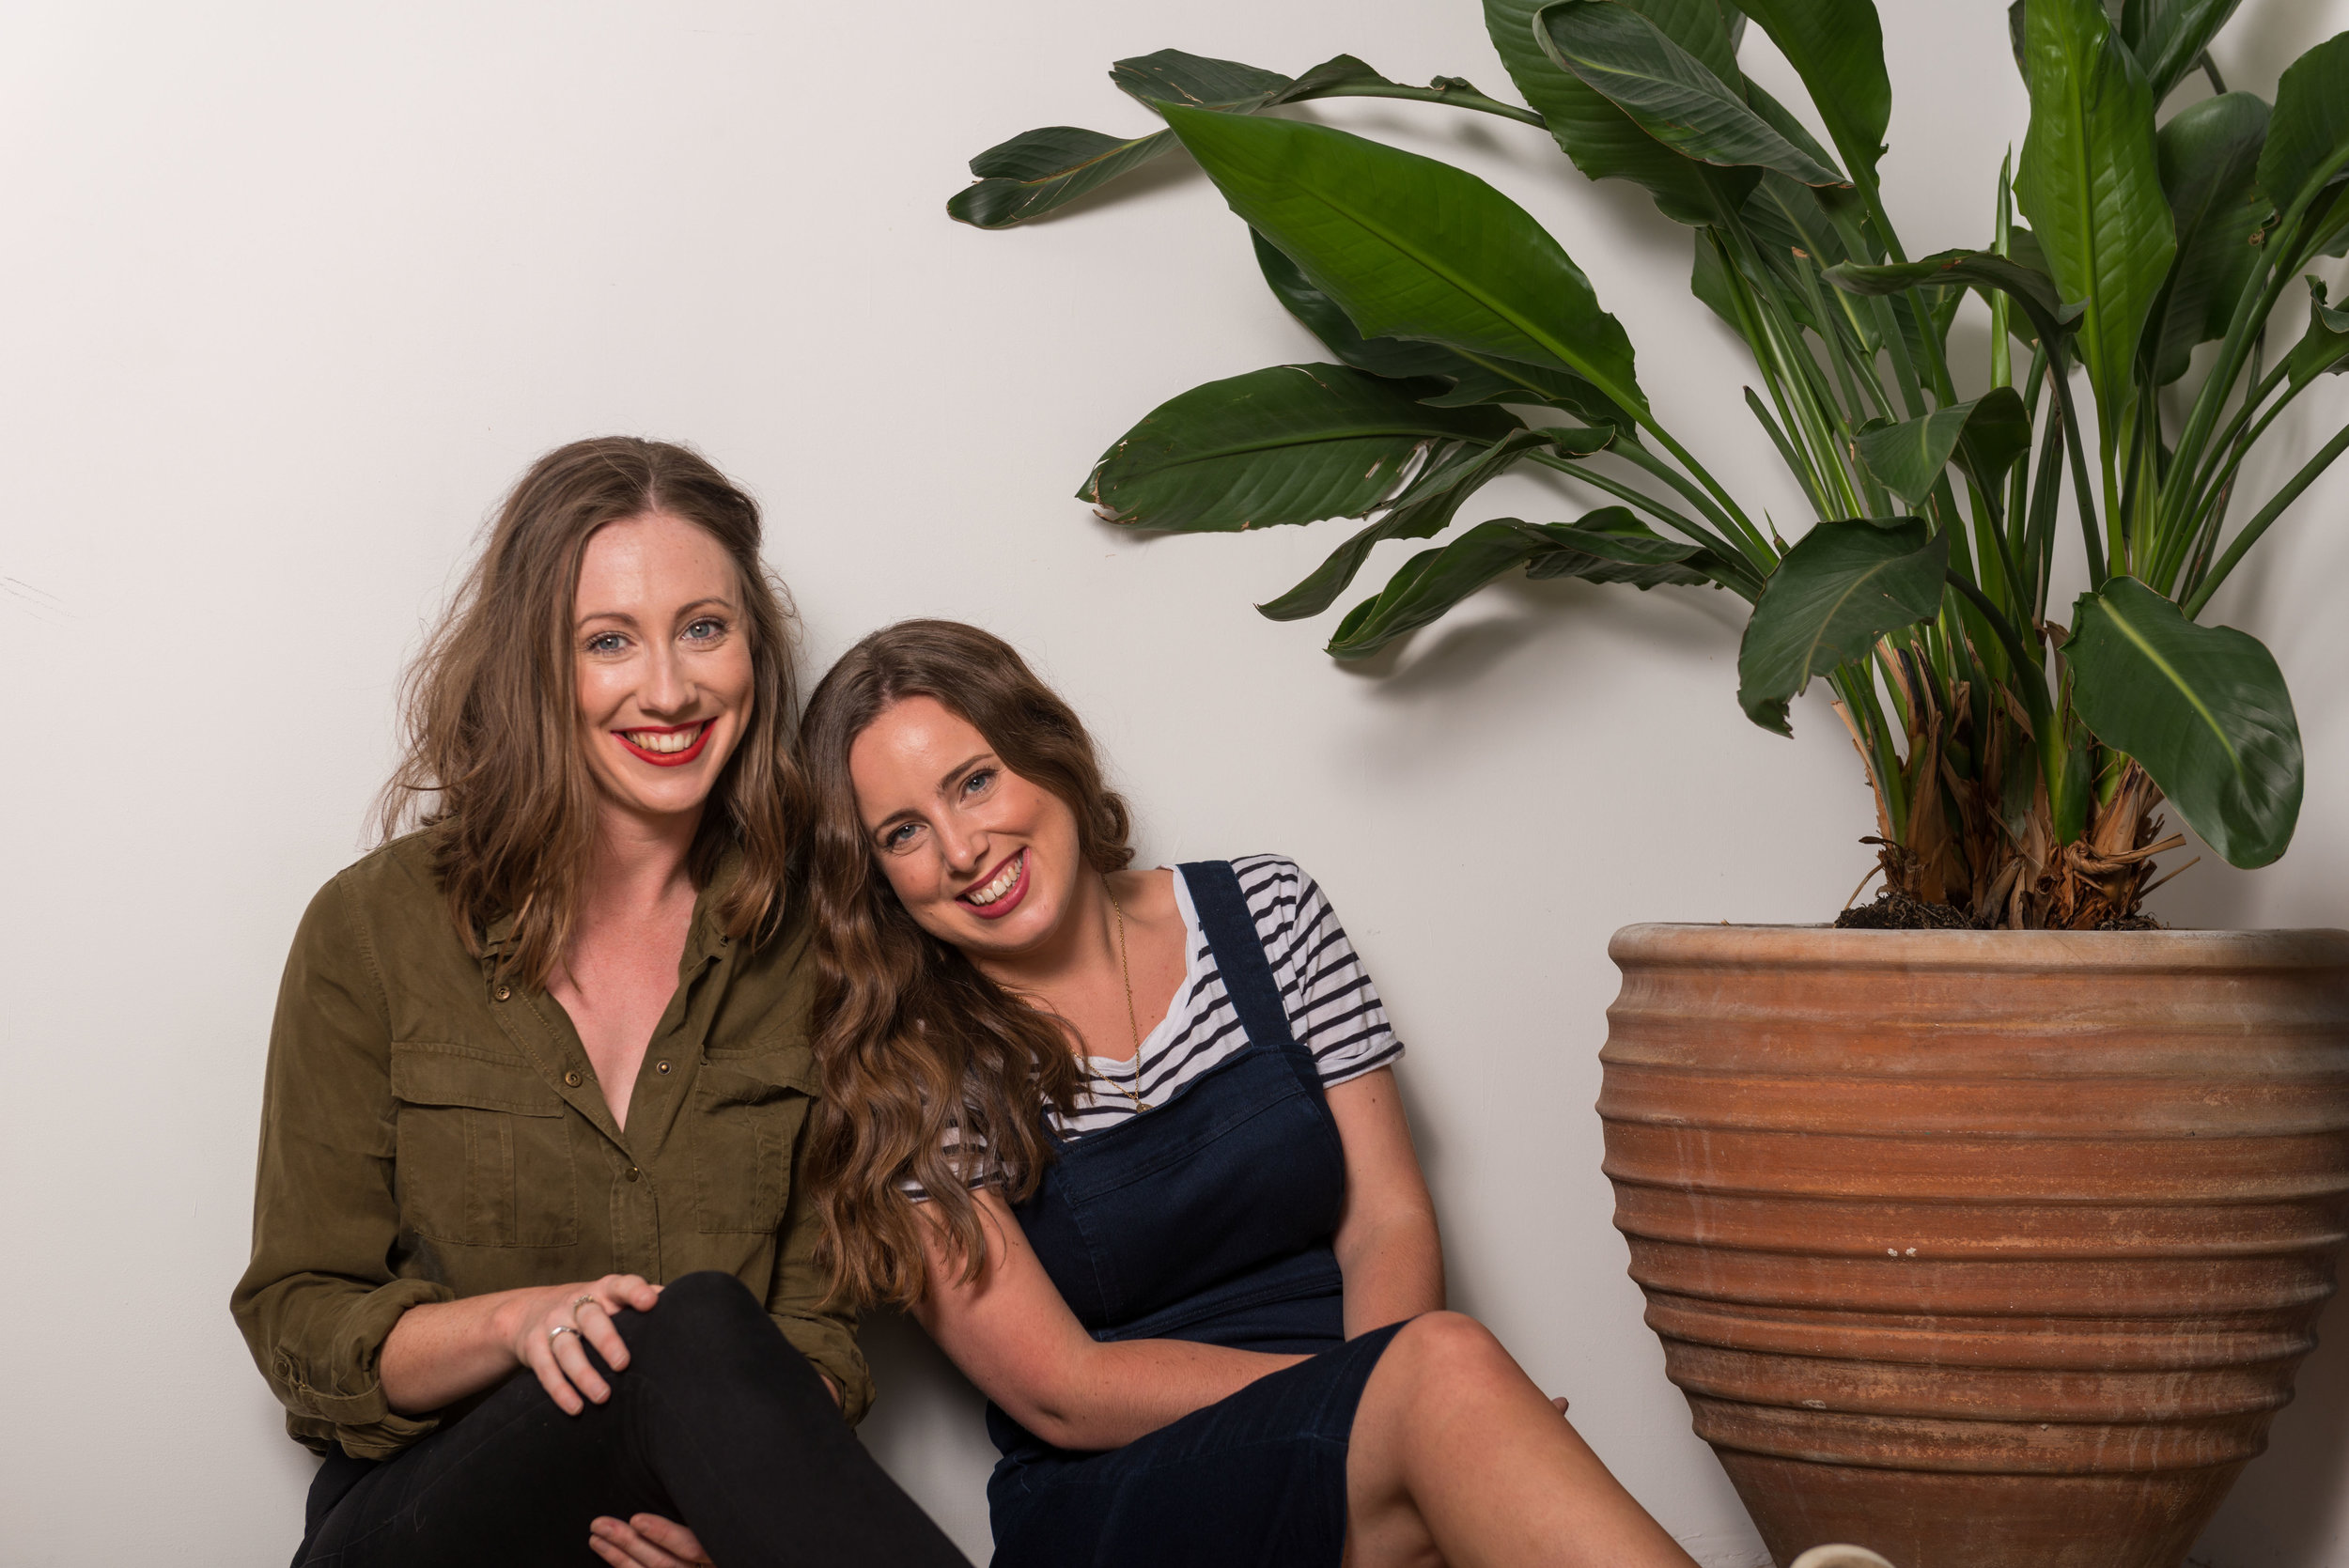 #379 Jess & Natalie - Jess and Nat founded Mac&Moore back in 2016, with a combined 17 years' of marketing experience under their belts. They offer a strategic and creative 'plug-in' marketing service to other service-based businesses, and are potentially the biggest champions of equality I've ever met. They run an initiative called The Female Focus, where they interview incredible females in true Badass Gal style! Last year they released their manifesto in which they promote 'Equality with Attitude', it's definitely worth a read and working into your lives if you can. They even packed up their bags and lived in Amsterdam for 6 months when starting out the business, to step out of the London bubble and see things from a different perspective. They're SO badass it hurts. And so deserving to have their work recognised more by the people in our industry.WebsiteMac & Moore LinkedInTwitter